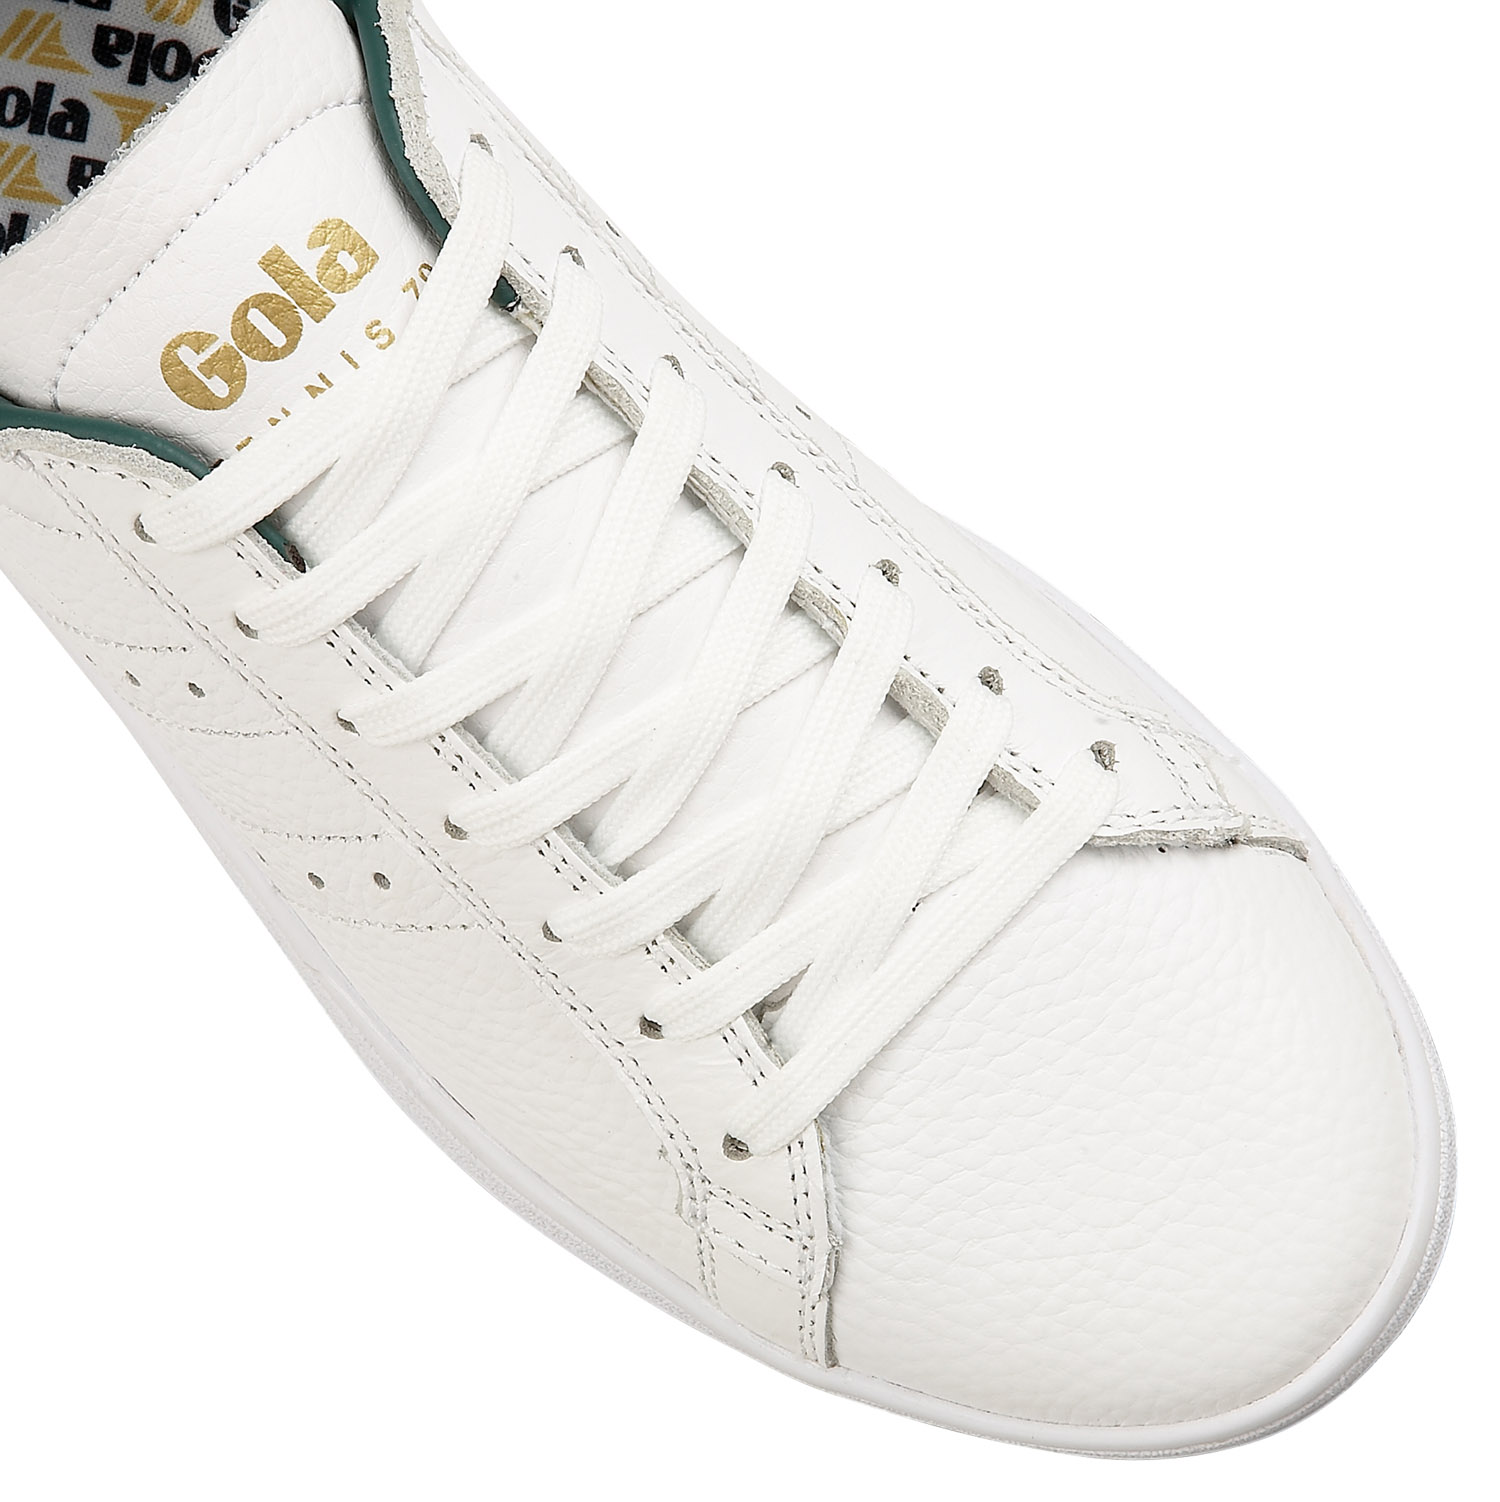 WHICH GOLA PAIR SUITS YOU?